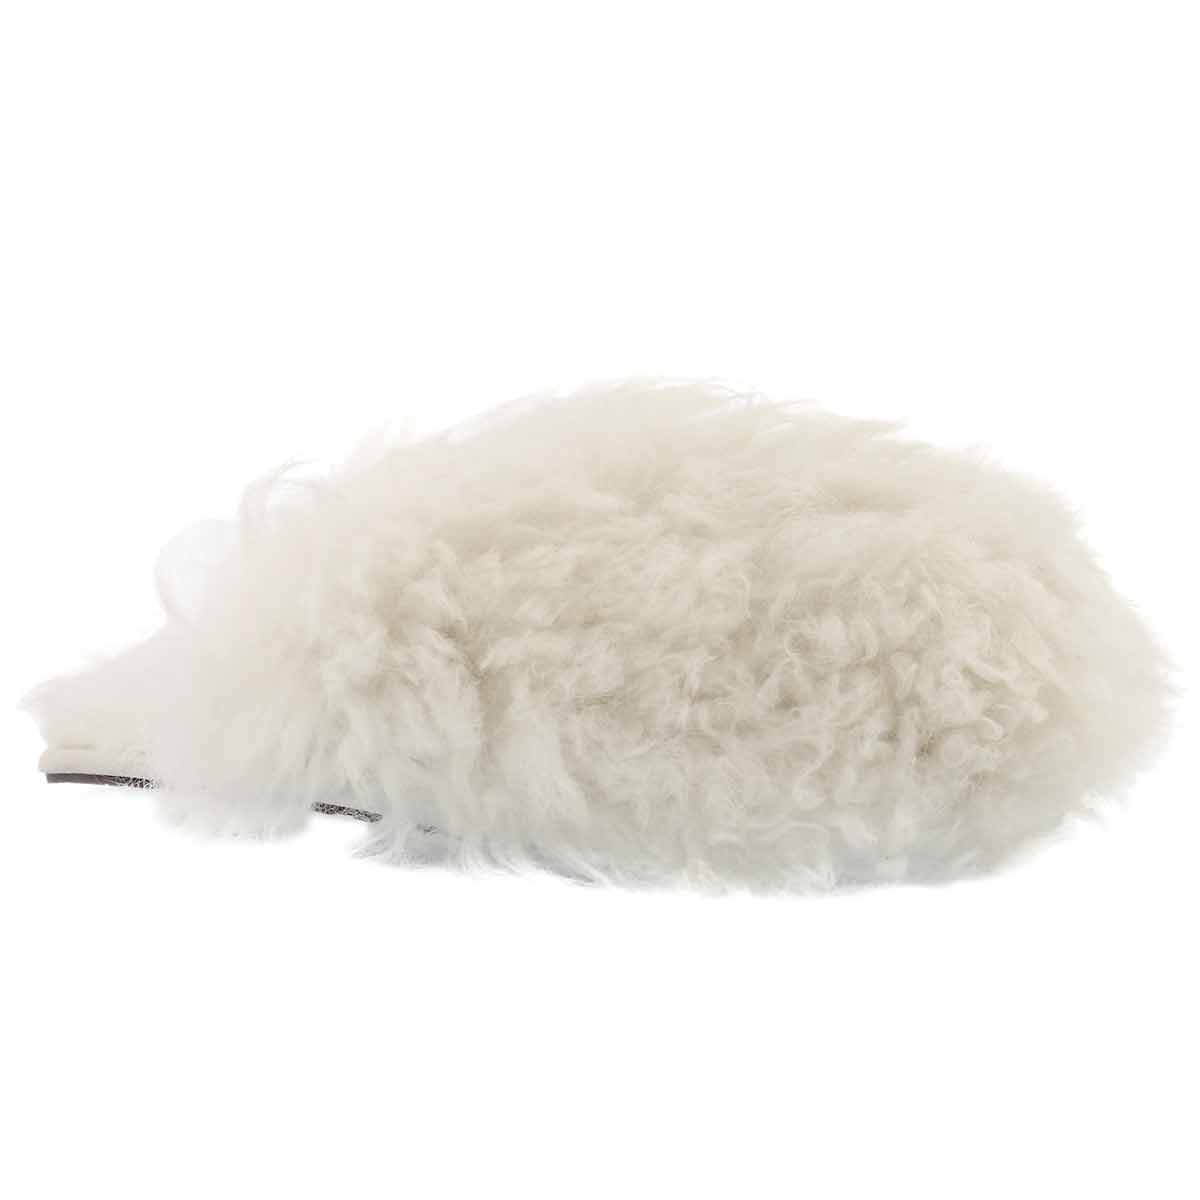 Women's FLUFF MOMMA MONGOLIAN white clogs